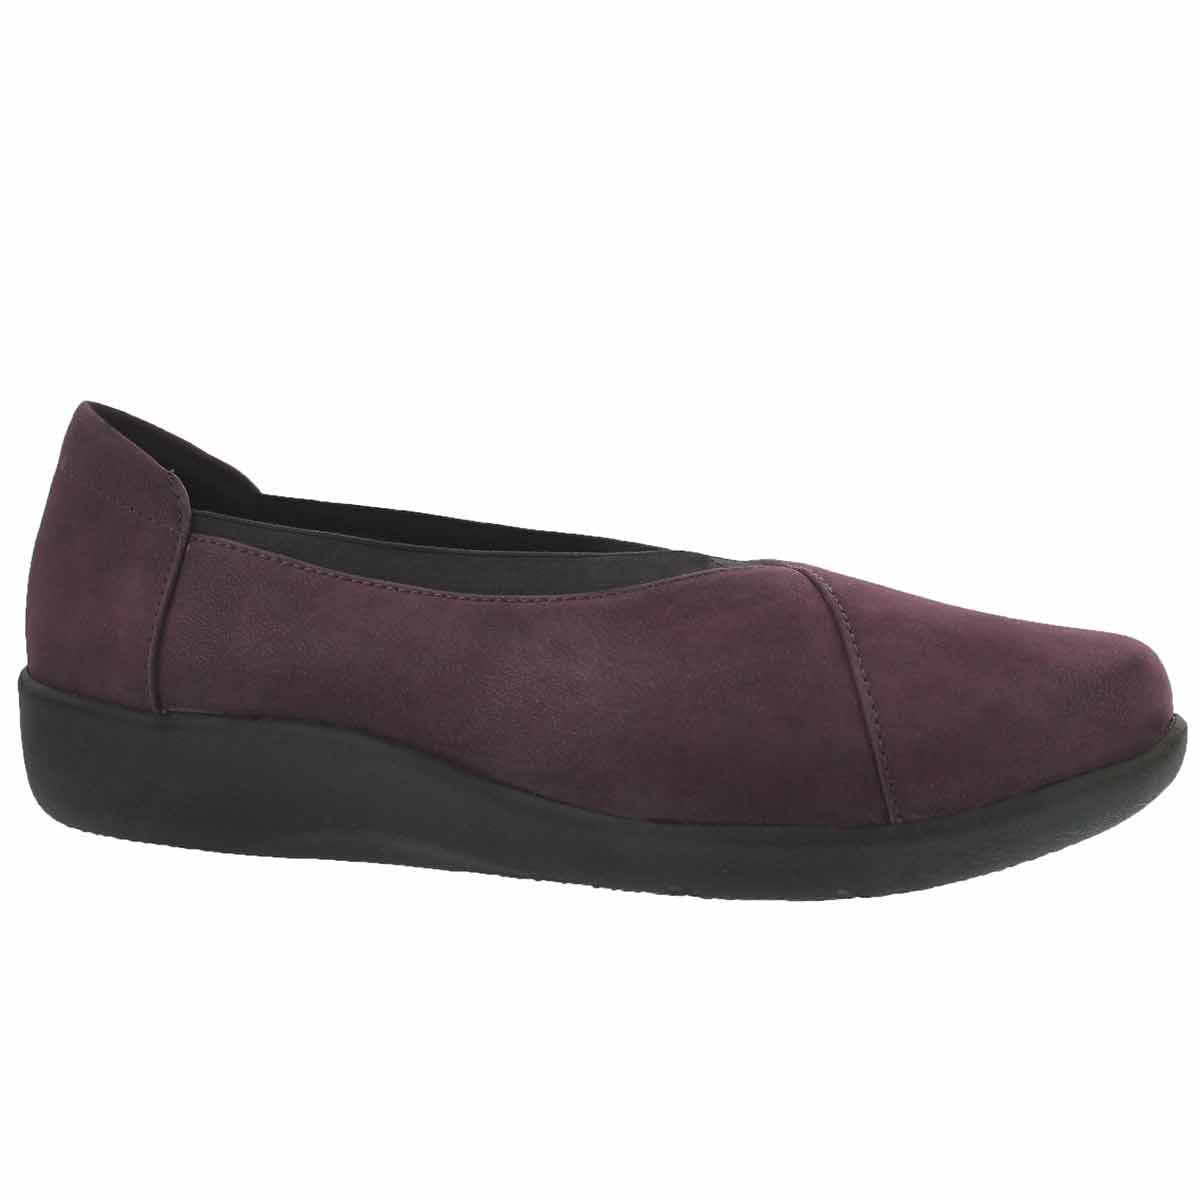 Women's SILLIAN HOLLY aubergine casual loafers